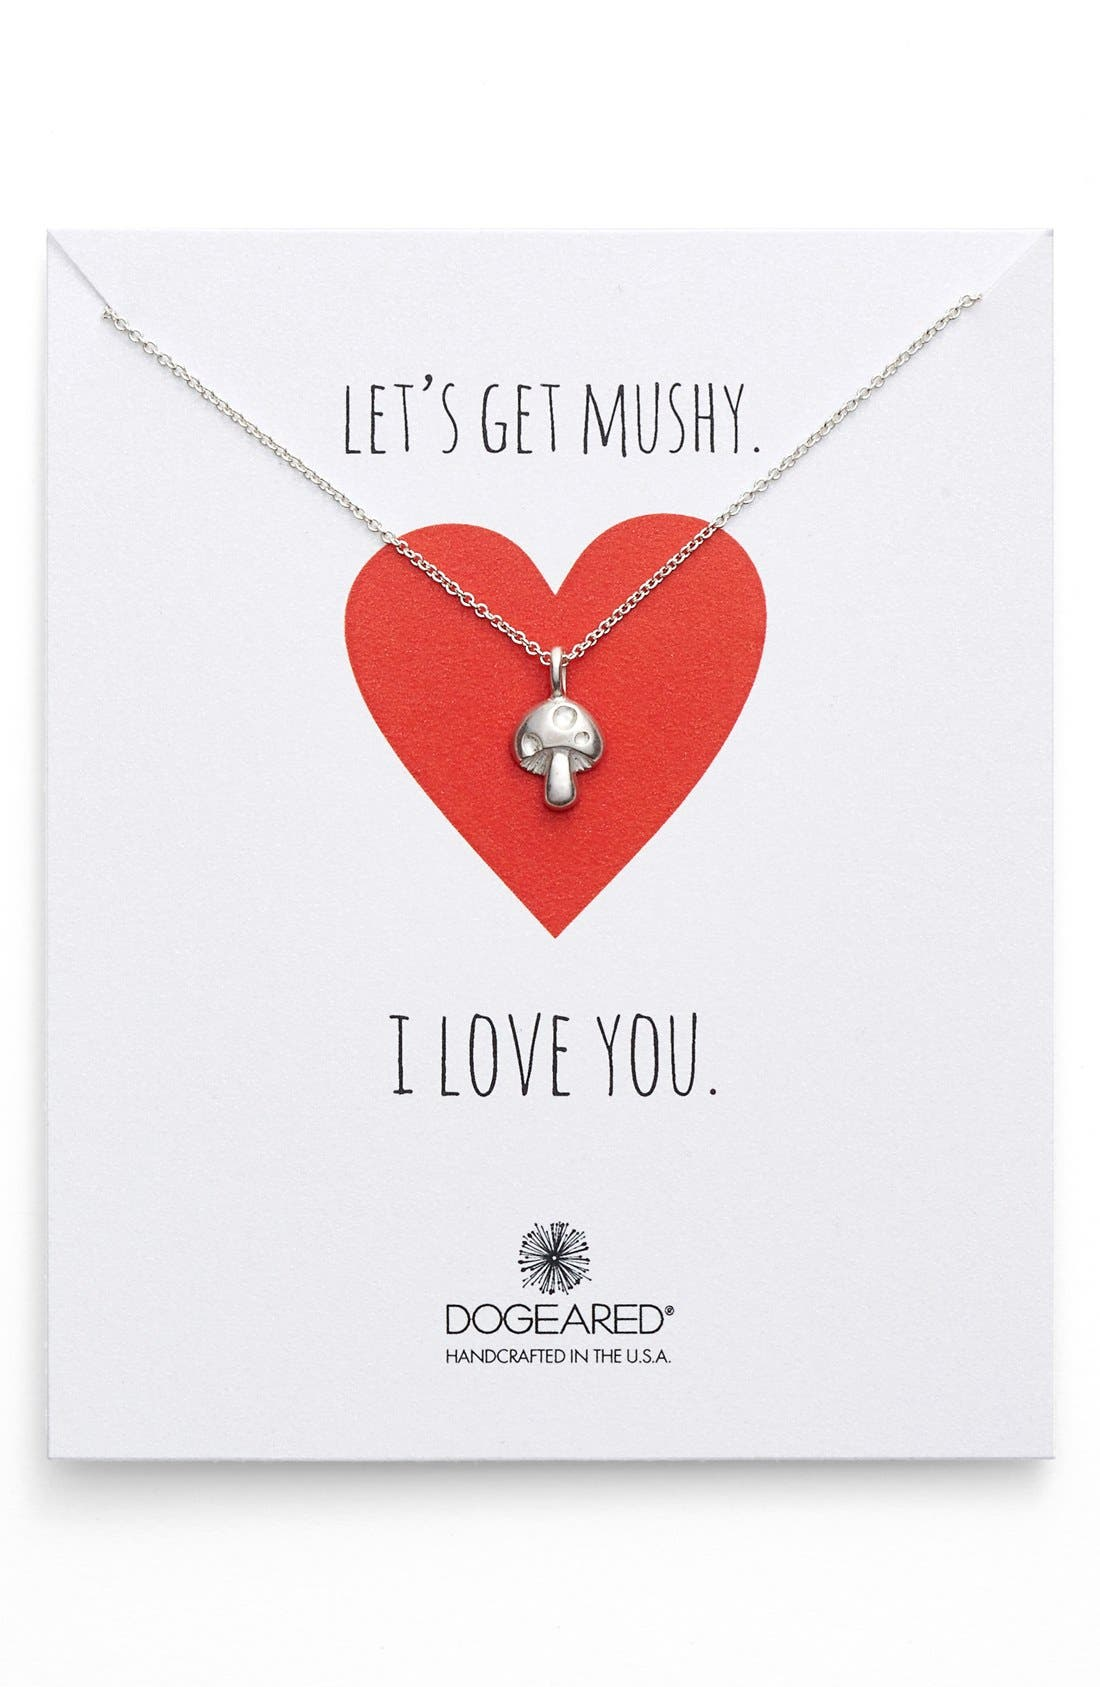 Alternate Image 1 Selected - Dogeared 'Let's Get Mushy' Mushroom Pendant Necklace (Nordstrom Exclusive)